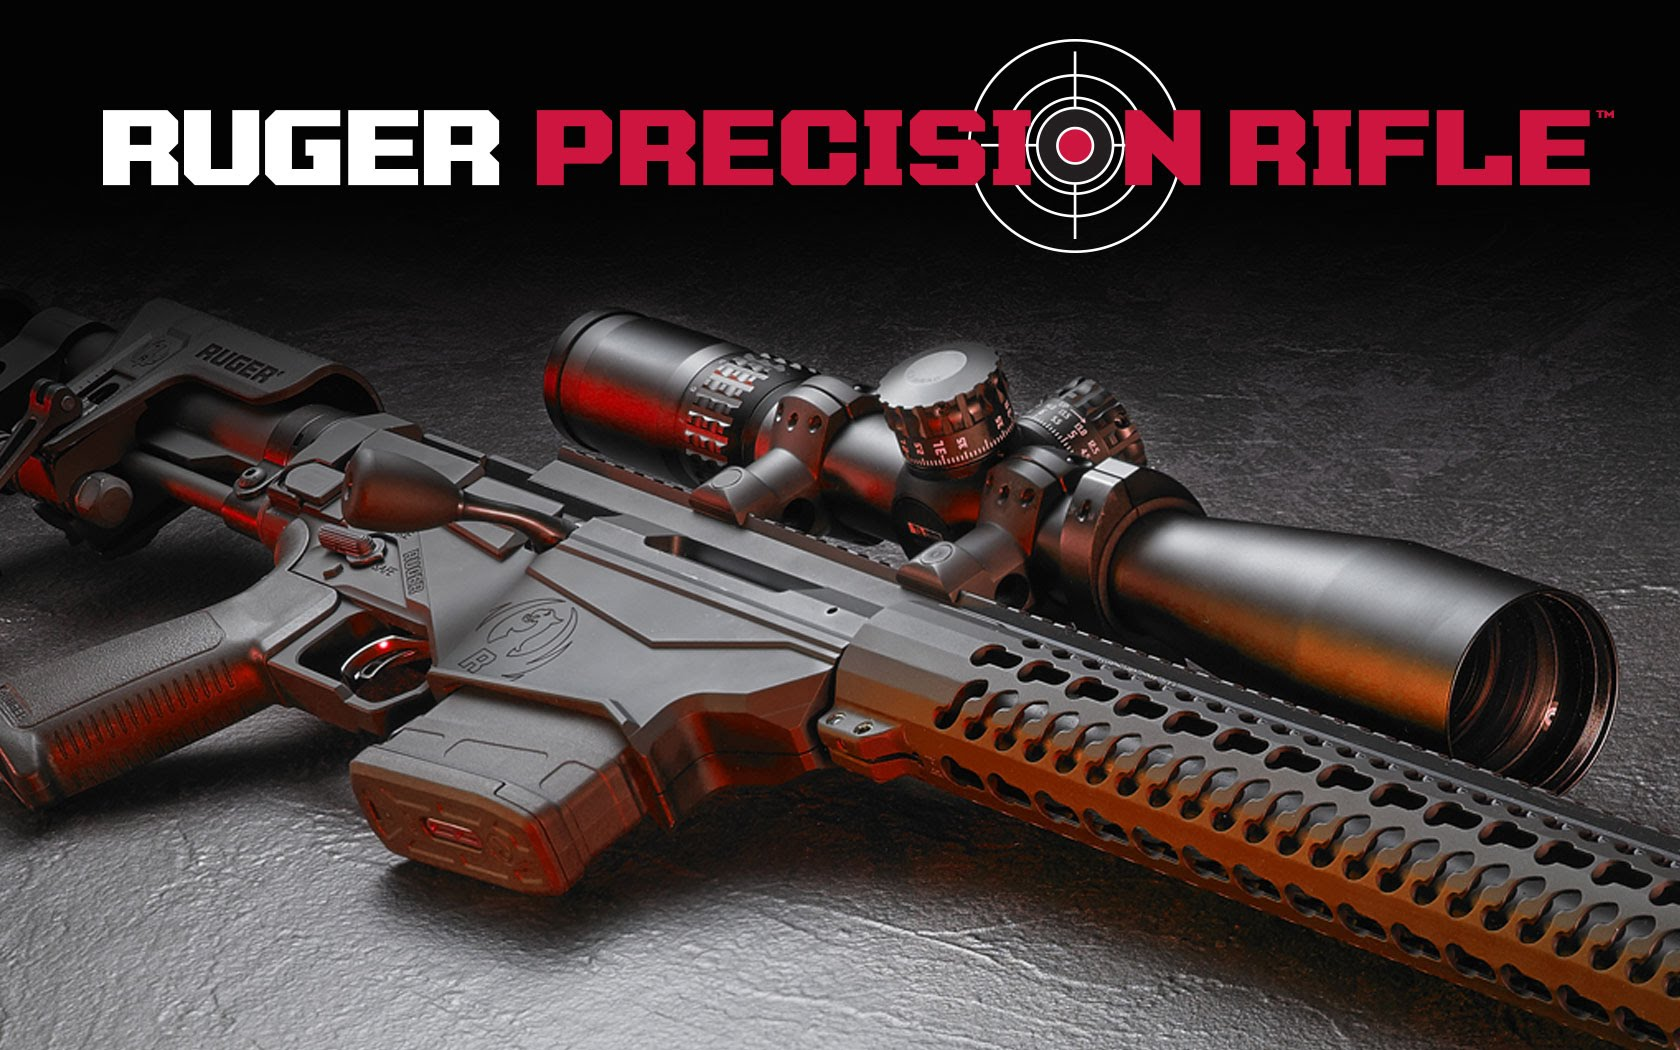 Ruger Precision Rifle 6.5 Creedmore 18005 Quick View (Review)